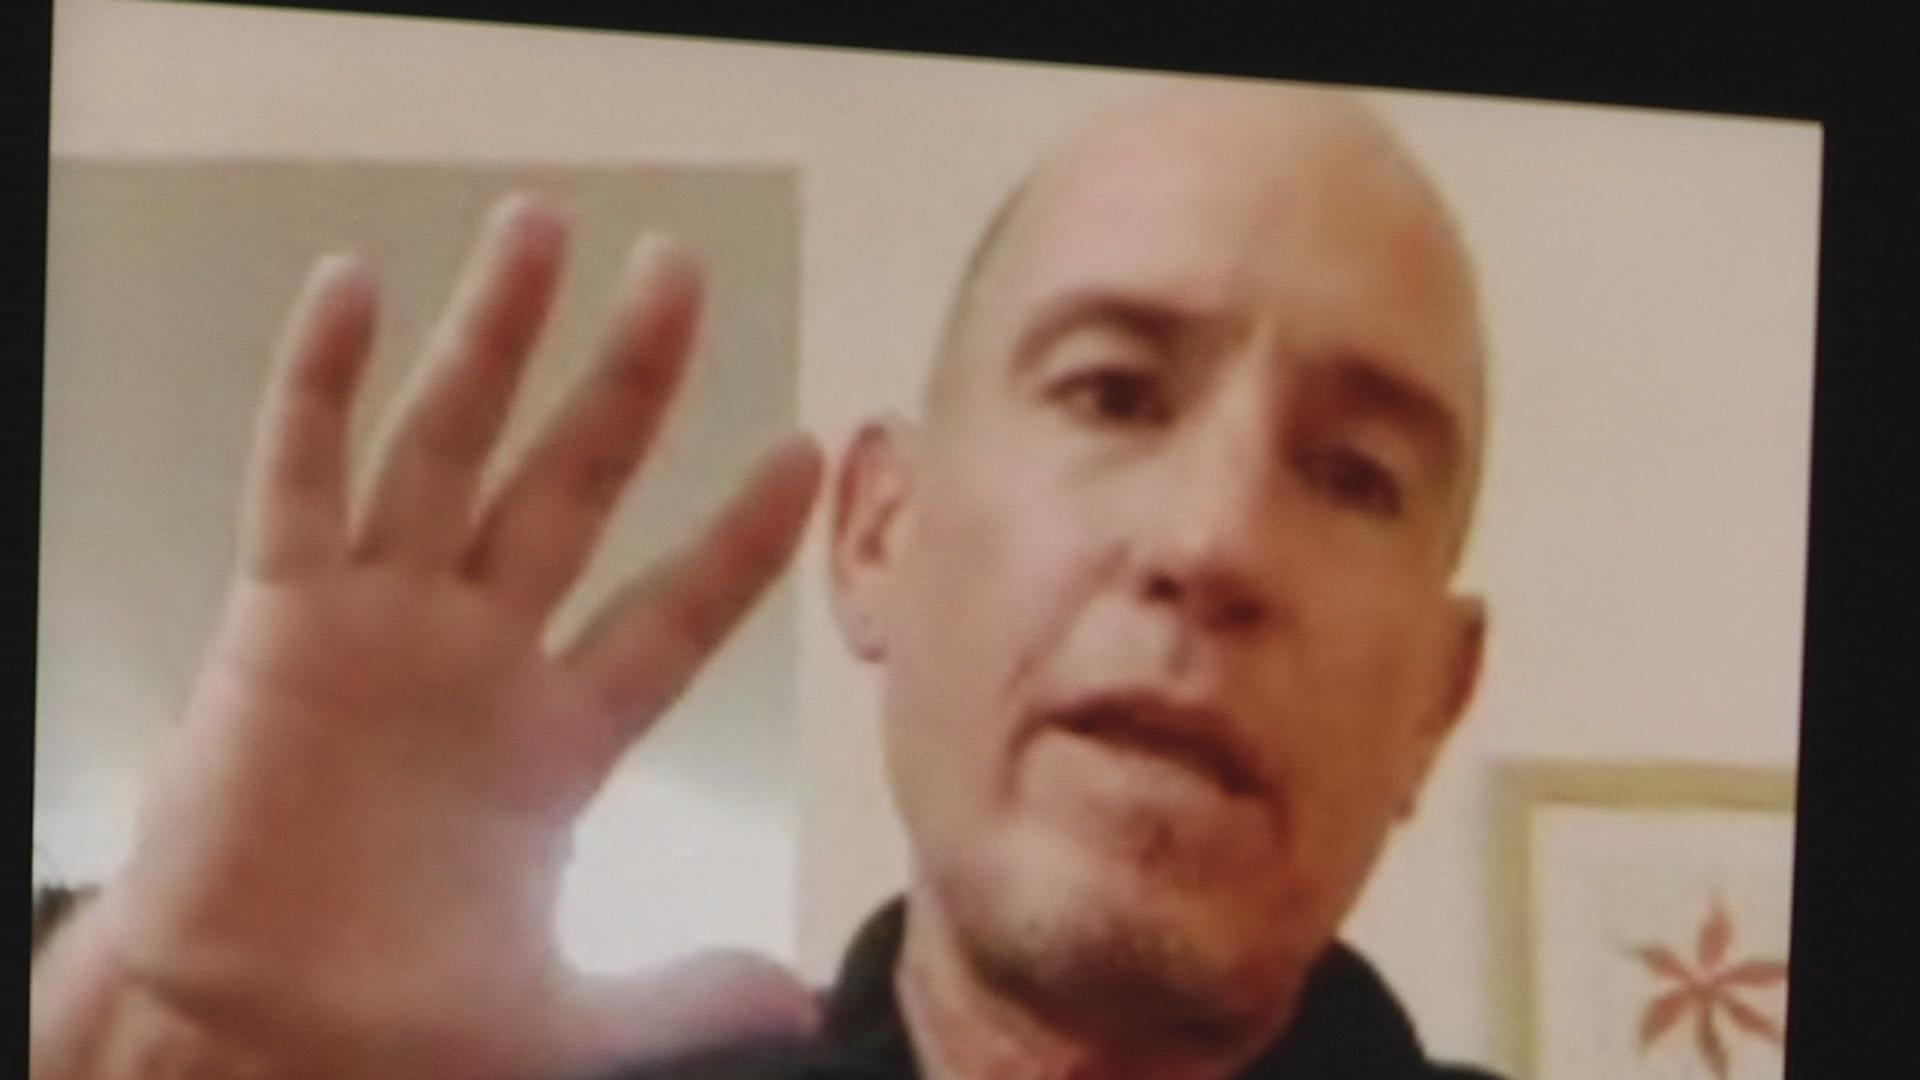 Marty Hoenish, a retired San Jose firefighter, survived a knife attack in London.